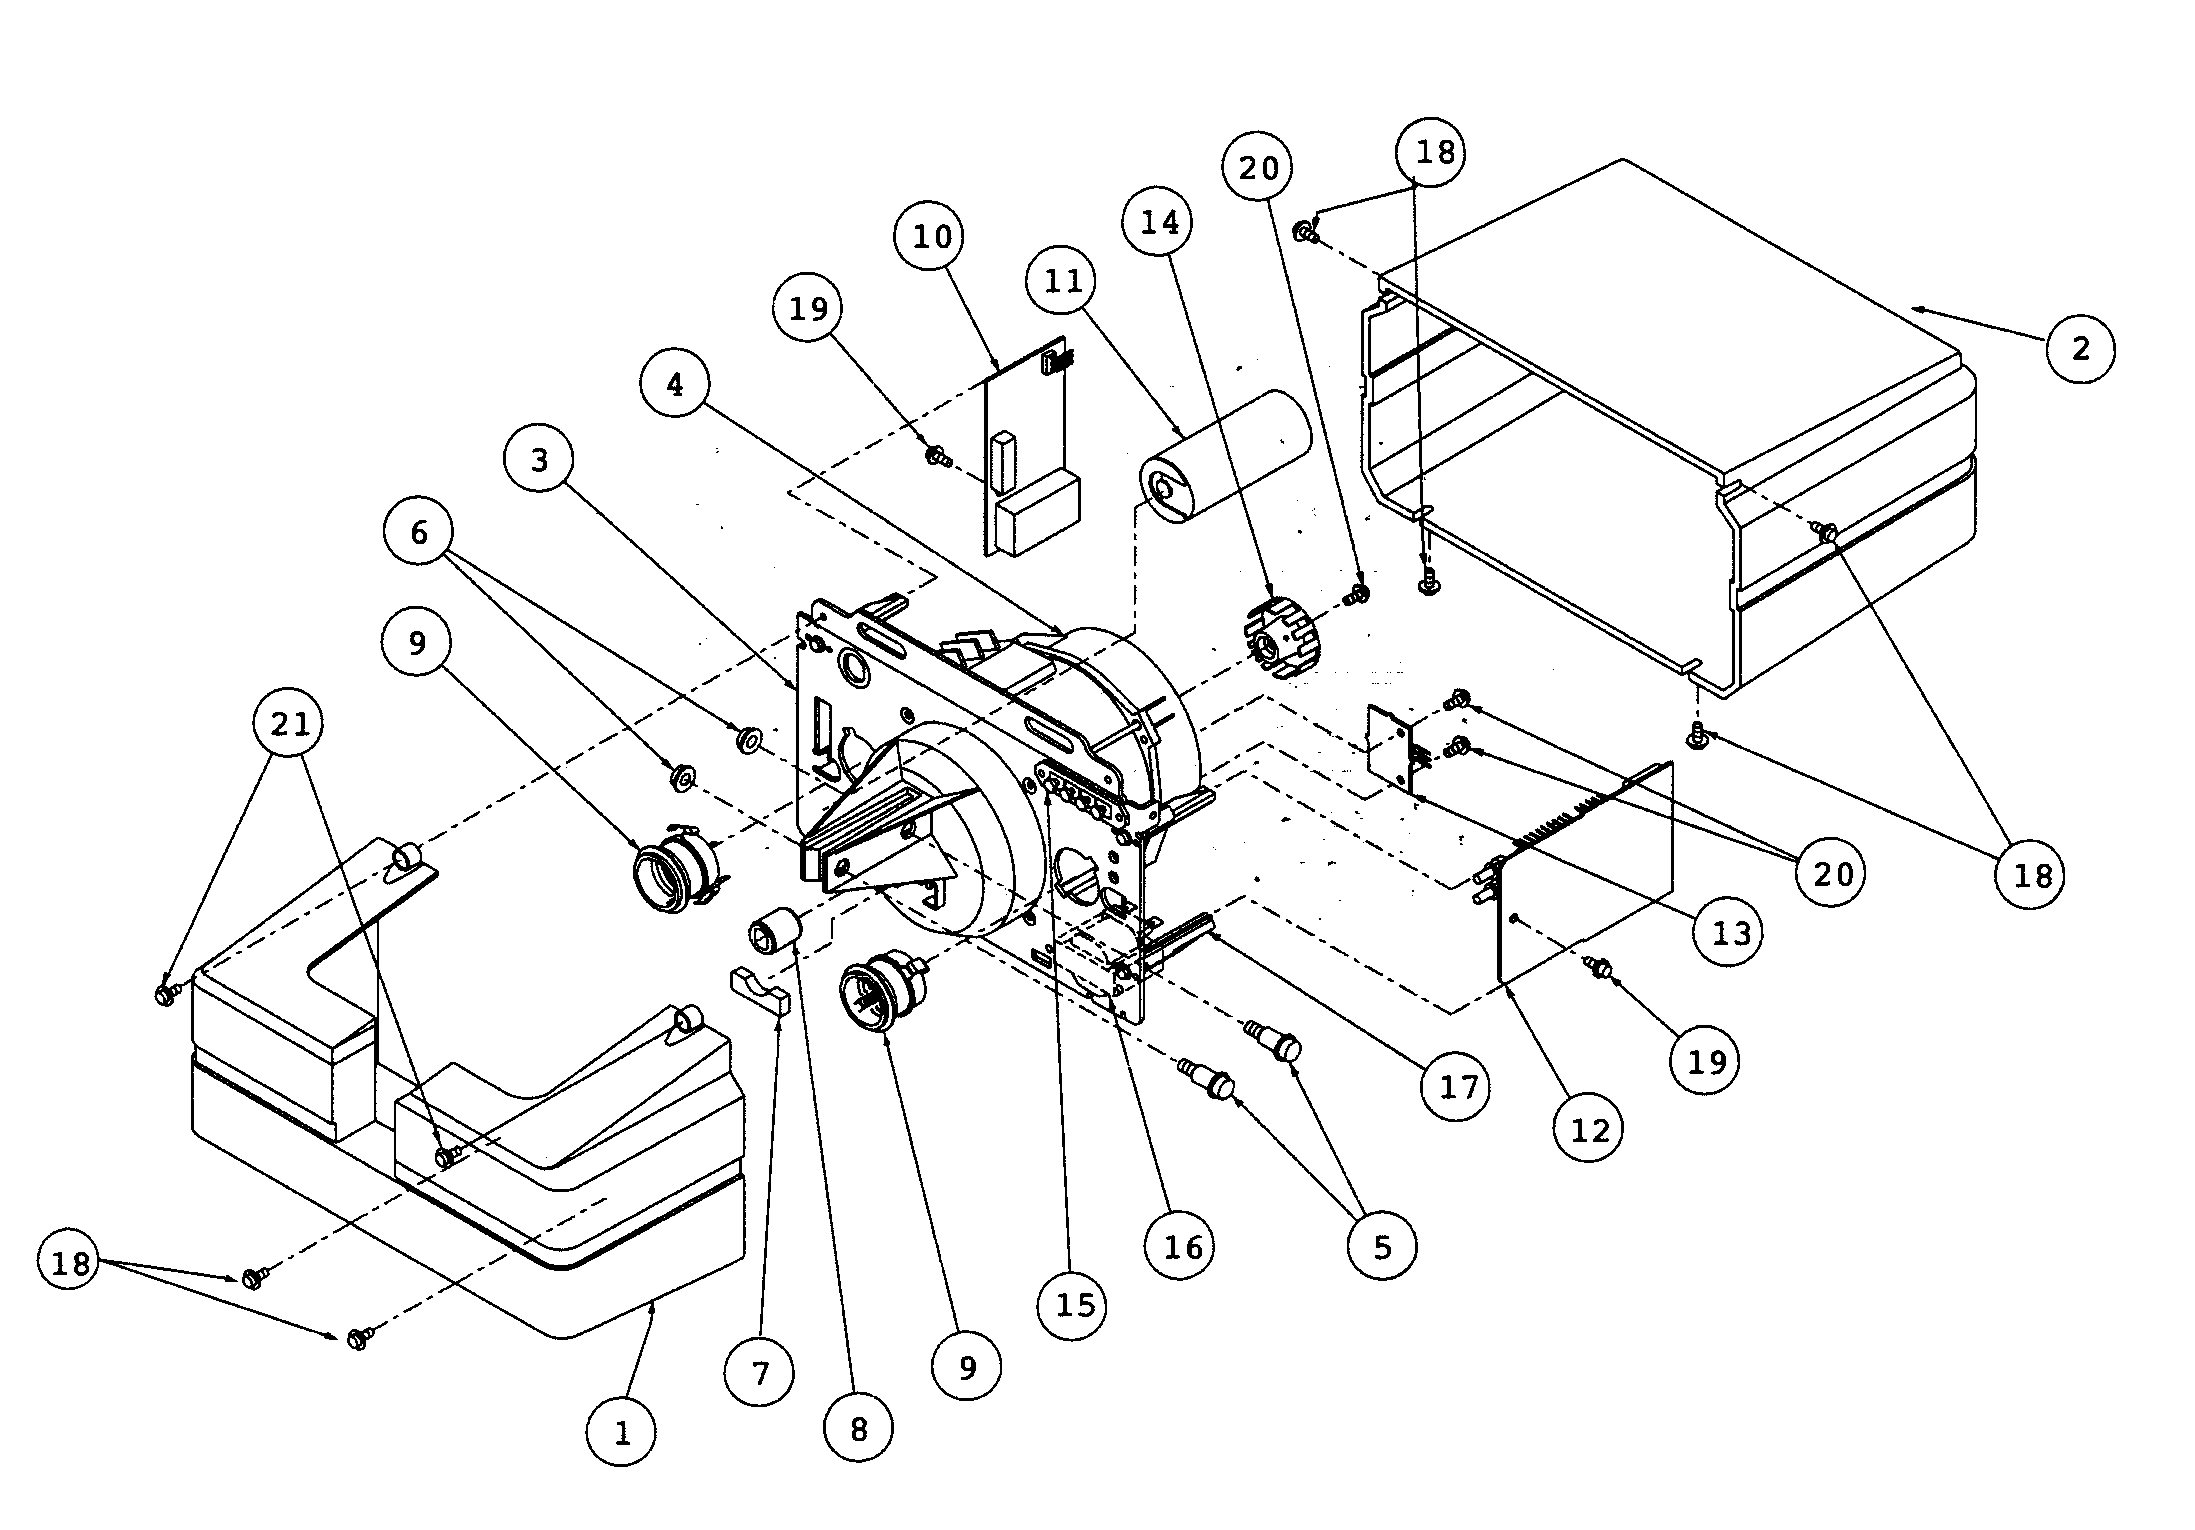 MOTOR ASSY Diagram & Parts List for Model H4000 Genie